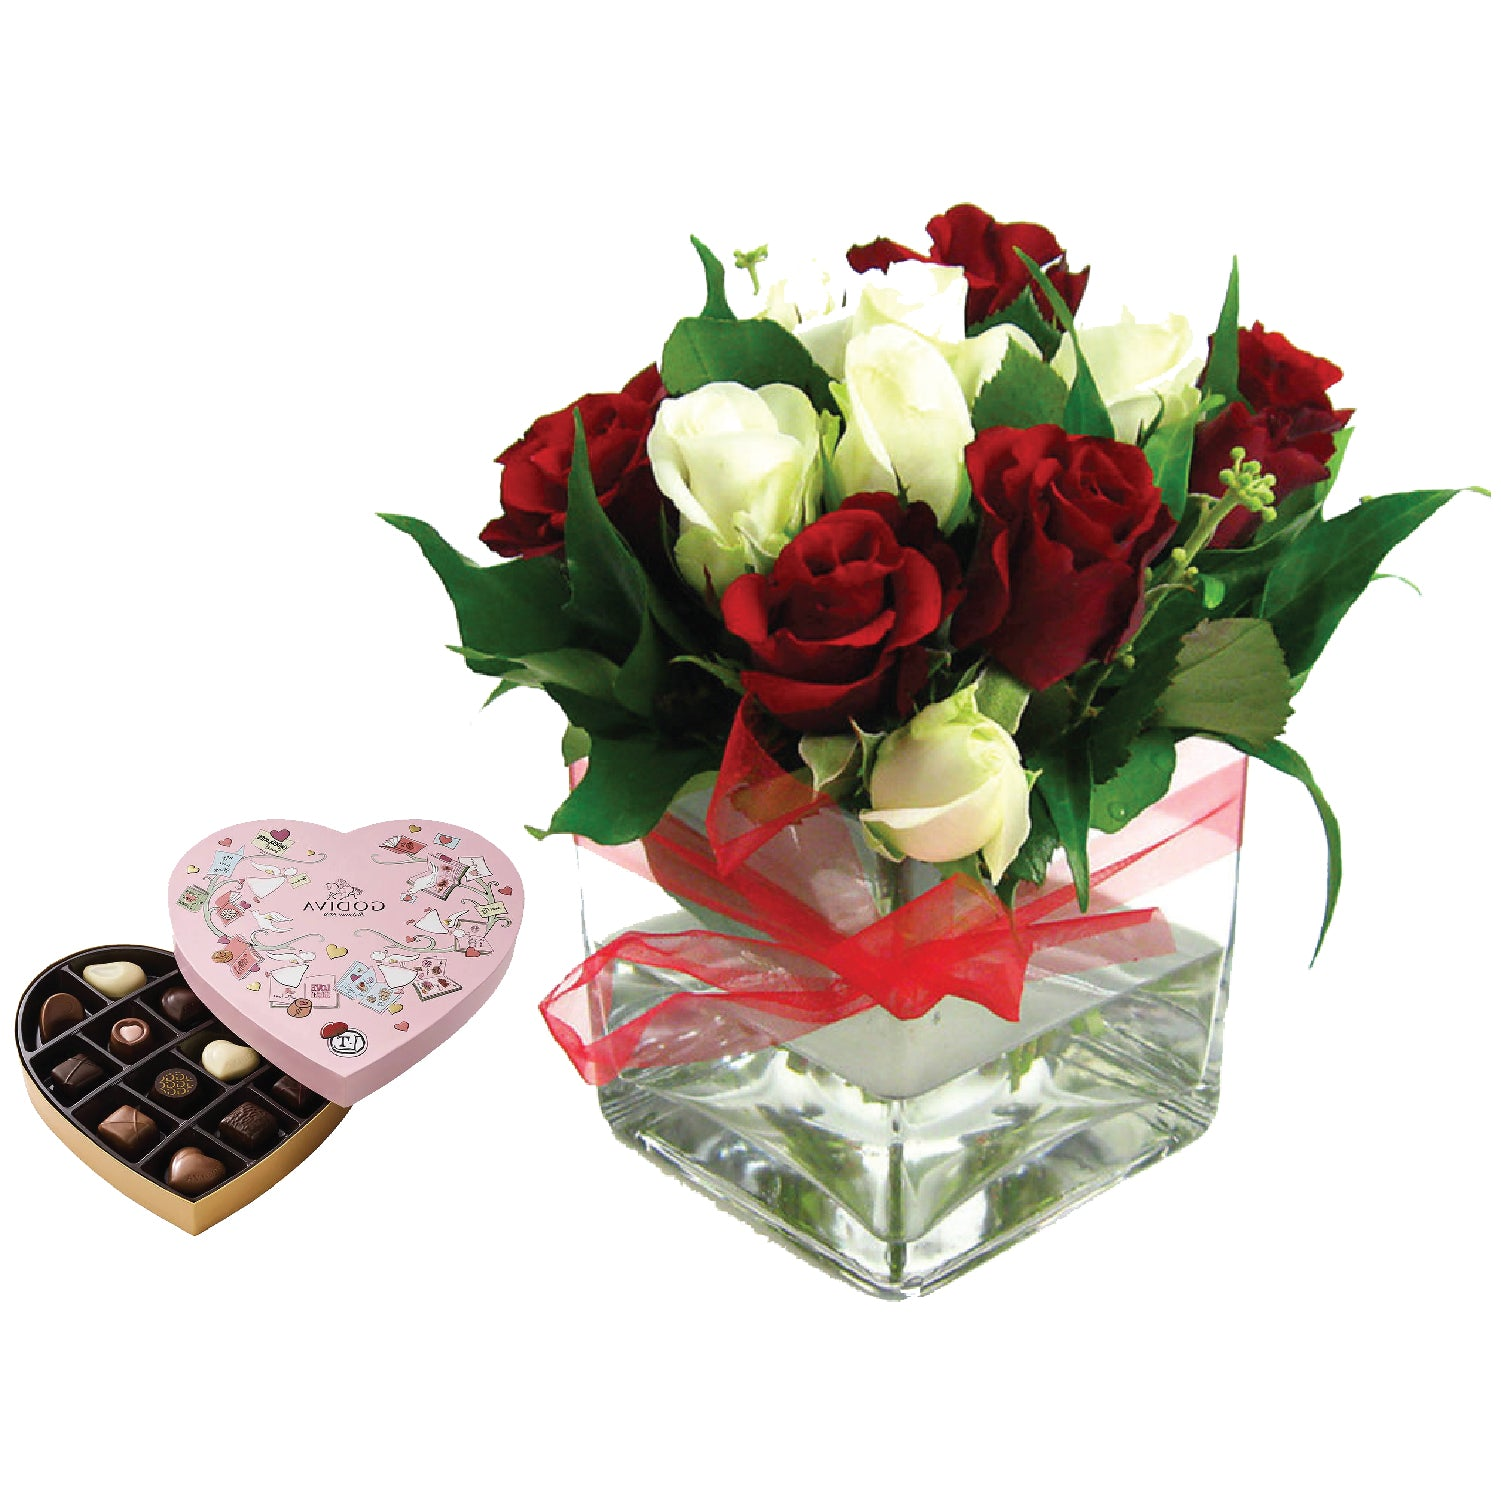 Red & White Rose Vase - Godiva Heart Chocolate Gift Box - Arabian Petals